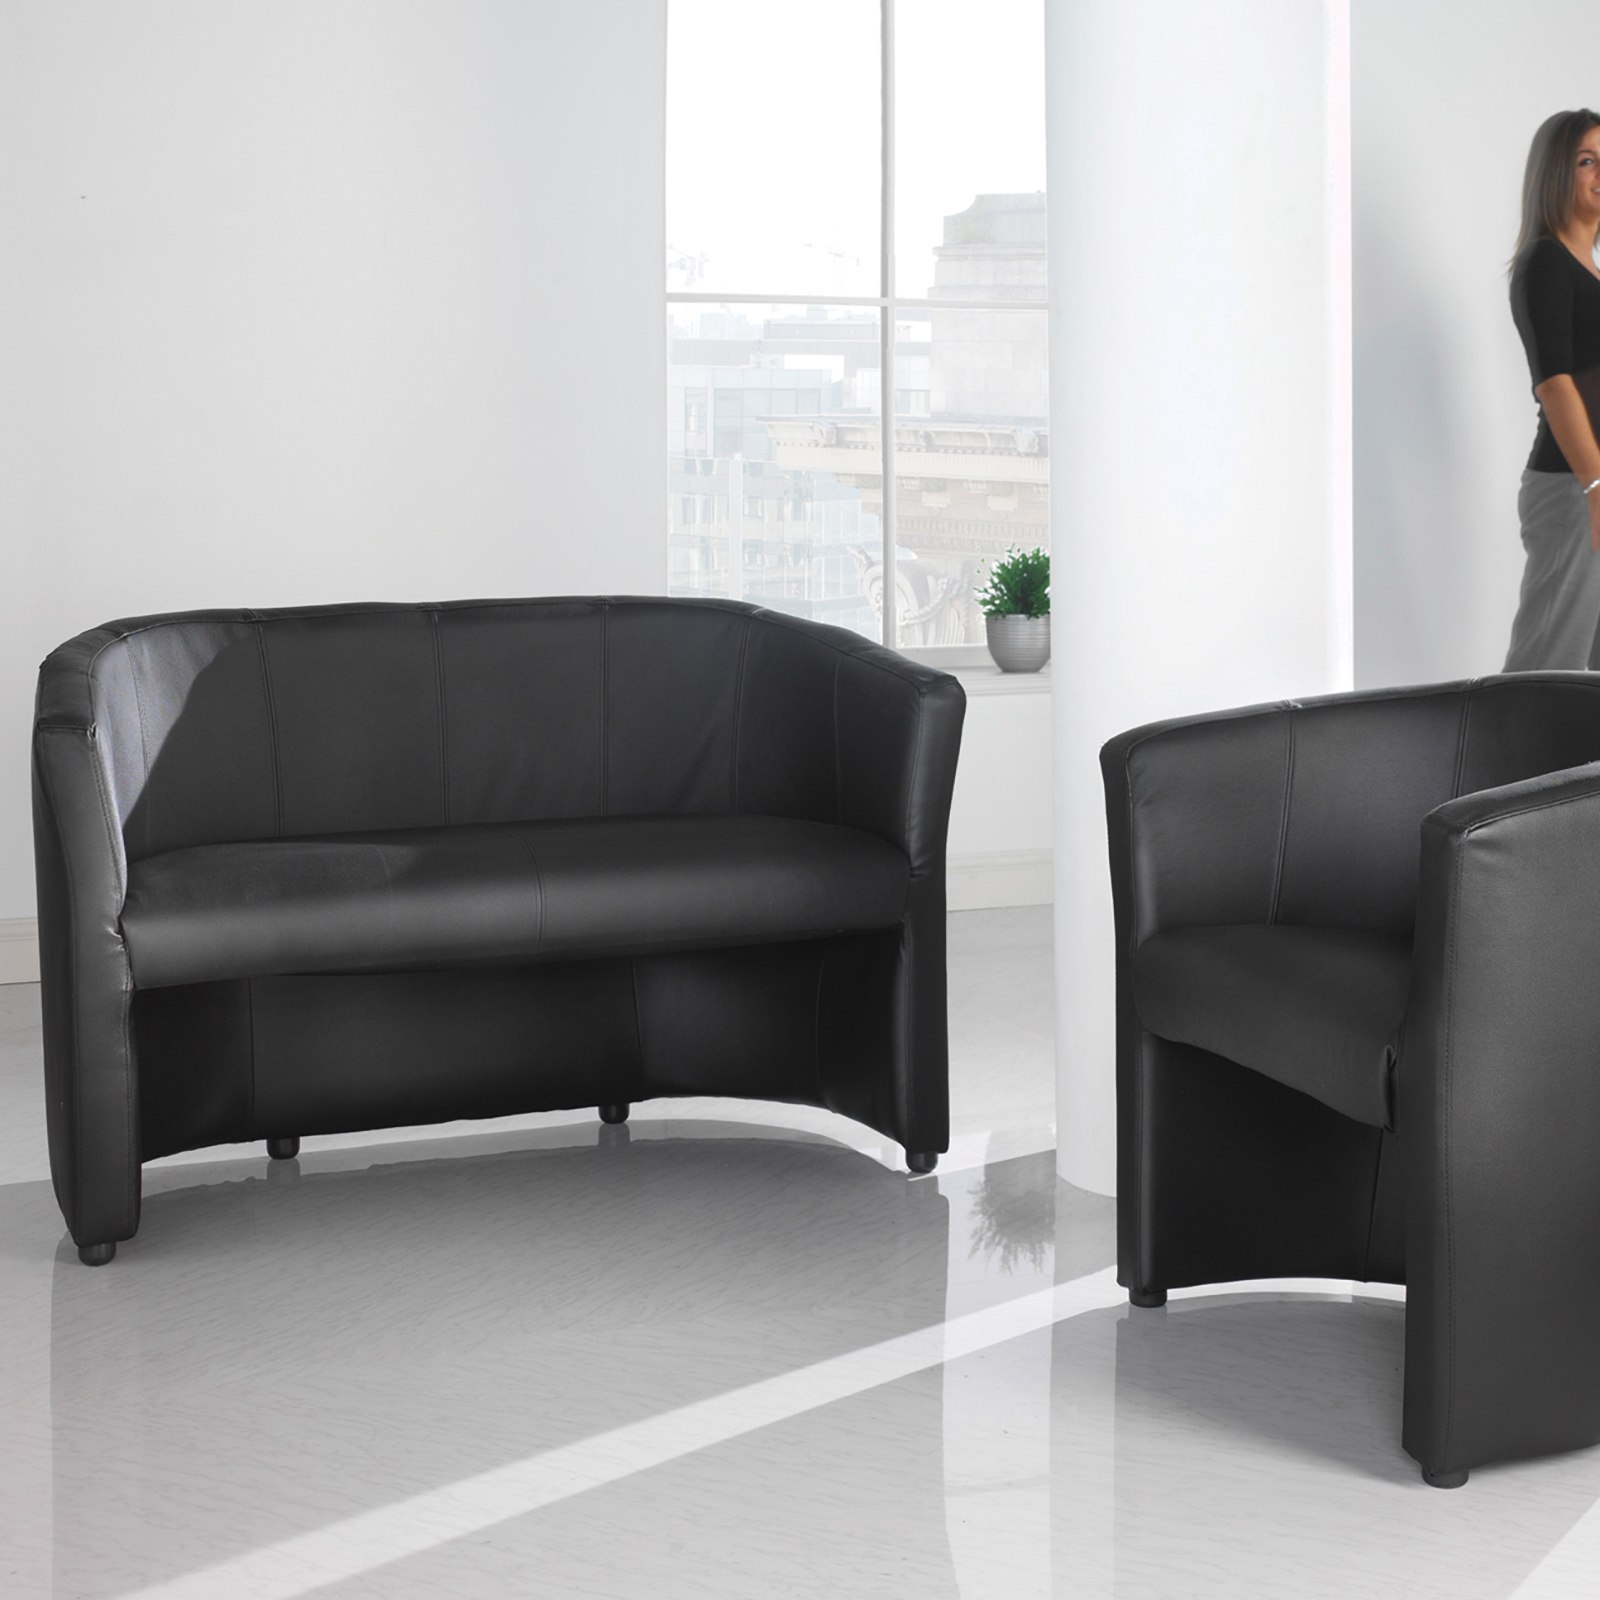 London reception single tub chair 670mm wide - black faux leather